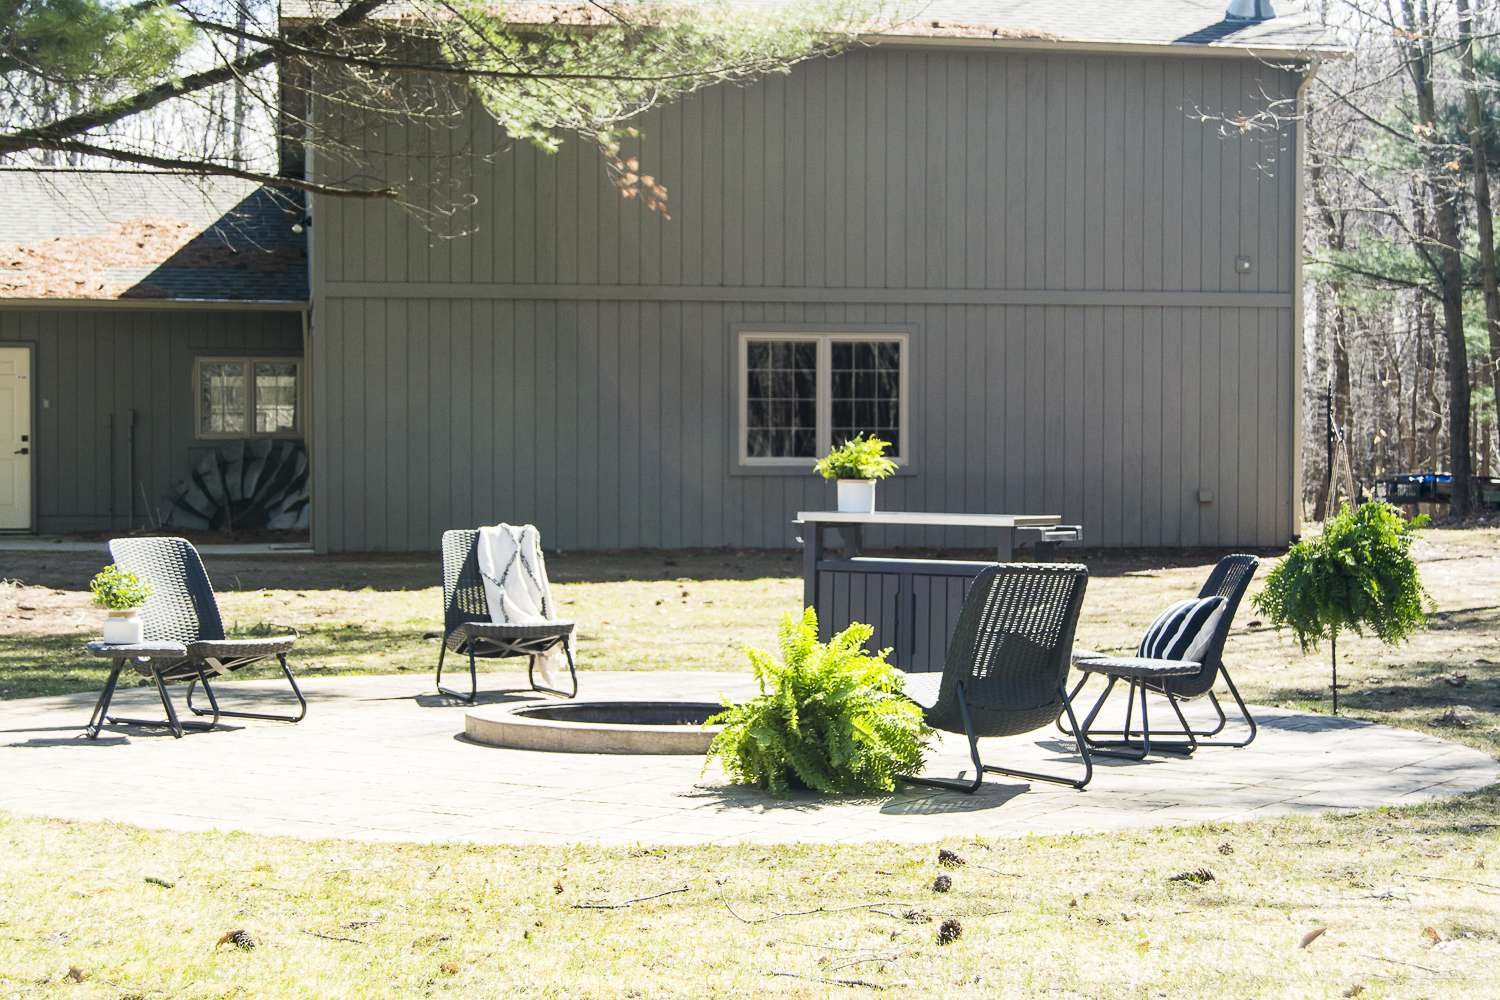 Are you excited for outdoor entertaining? Today I'm sharing my stamped concrete fire pit design plan as I gear up for the warm weather season! #fromhousetohaven #stampedconcrete #patiodecor